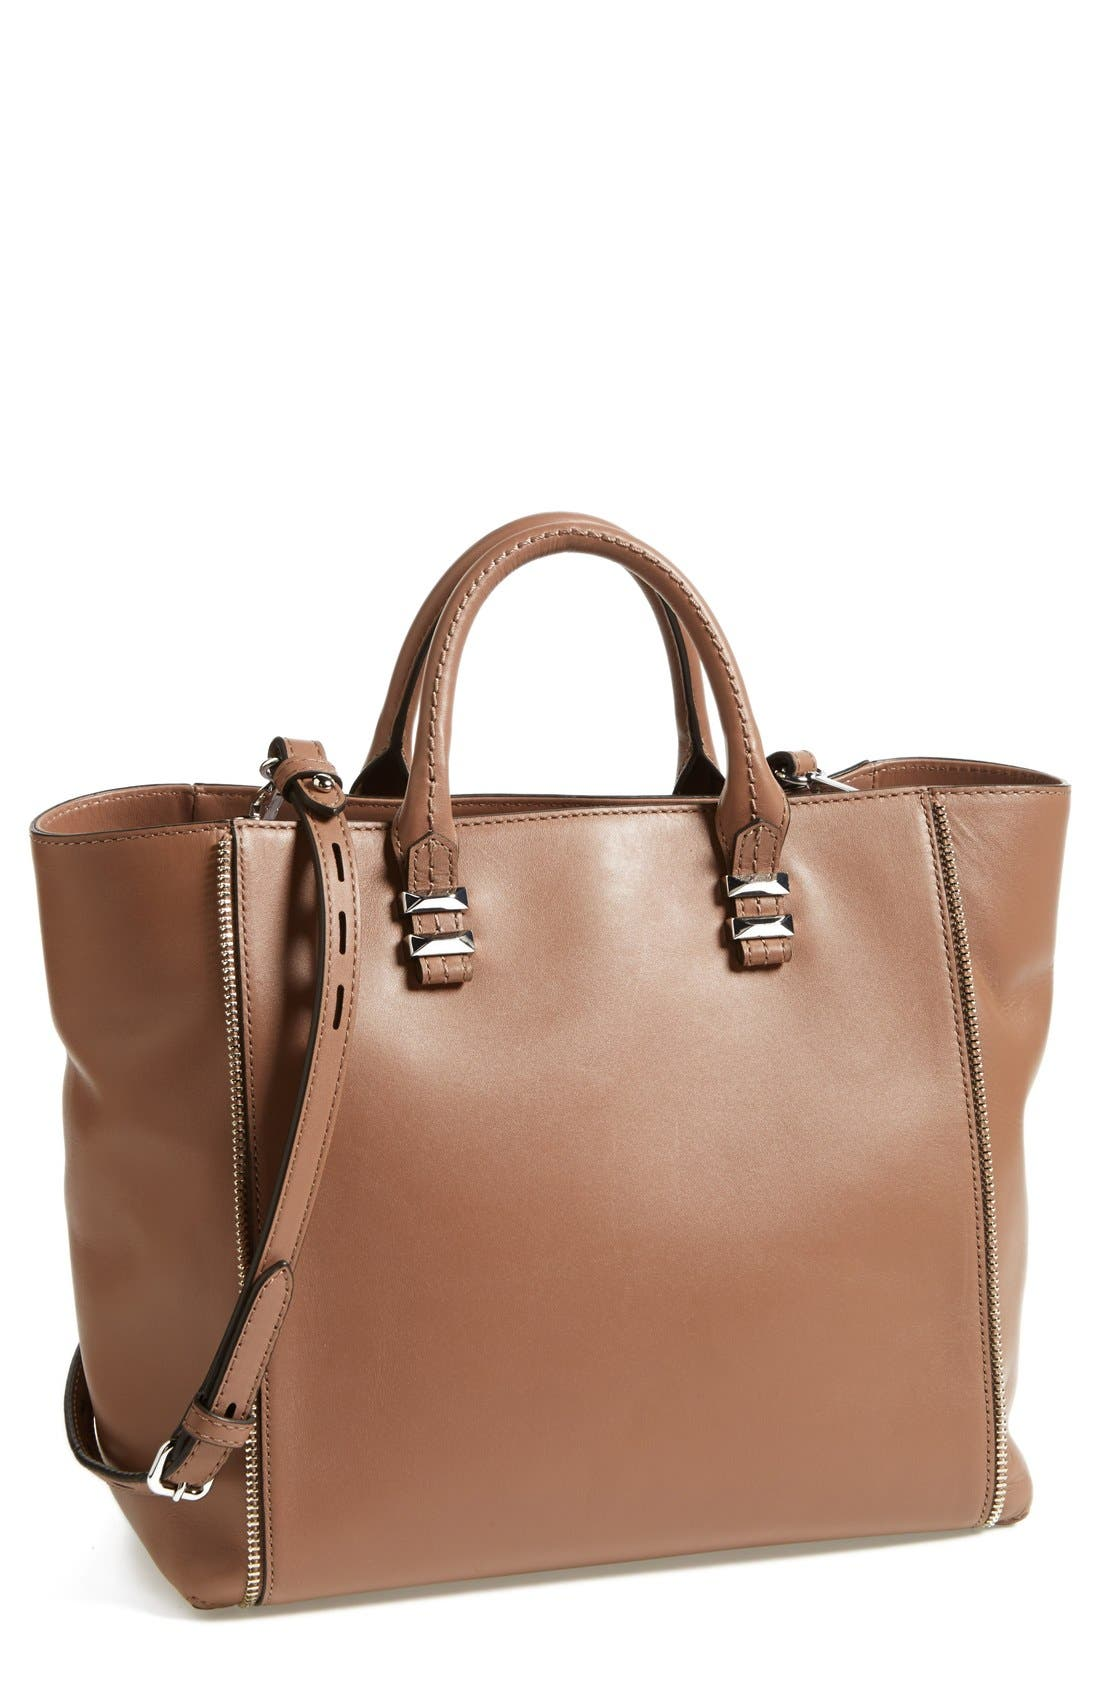 Main Image - Rebecca Minkoff 'Mini Perry' Tote